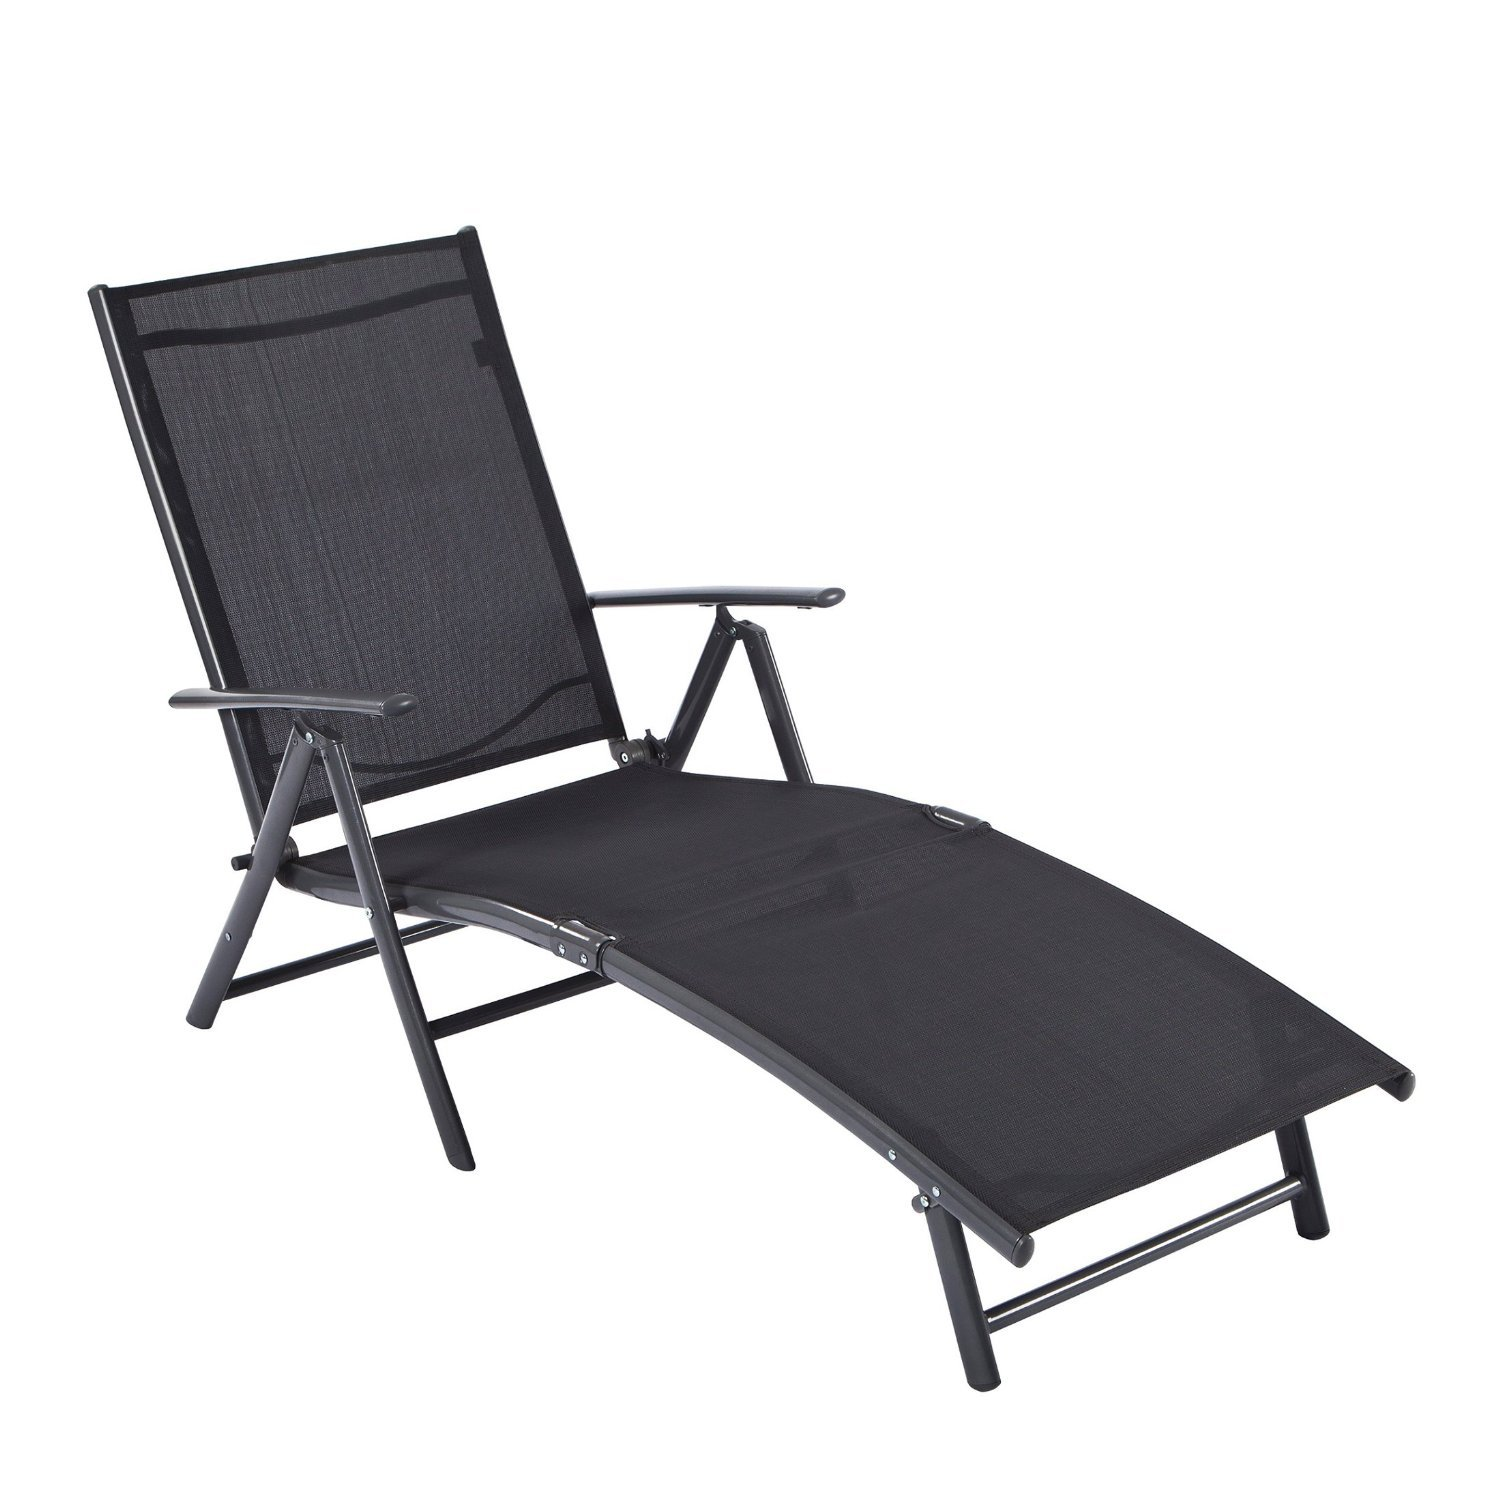 Ultranatura Chaise longue en aluminium, gamme Korfu - Basic,Anthracite 20010000111A